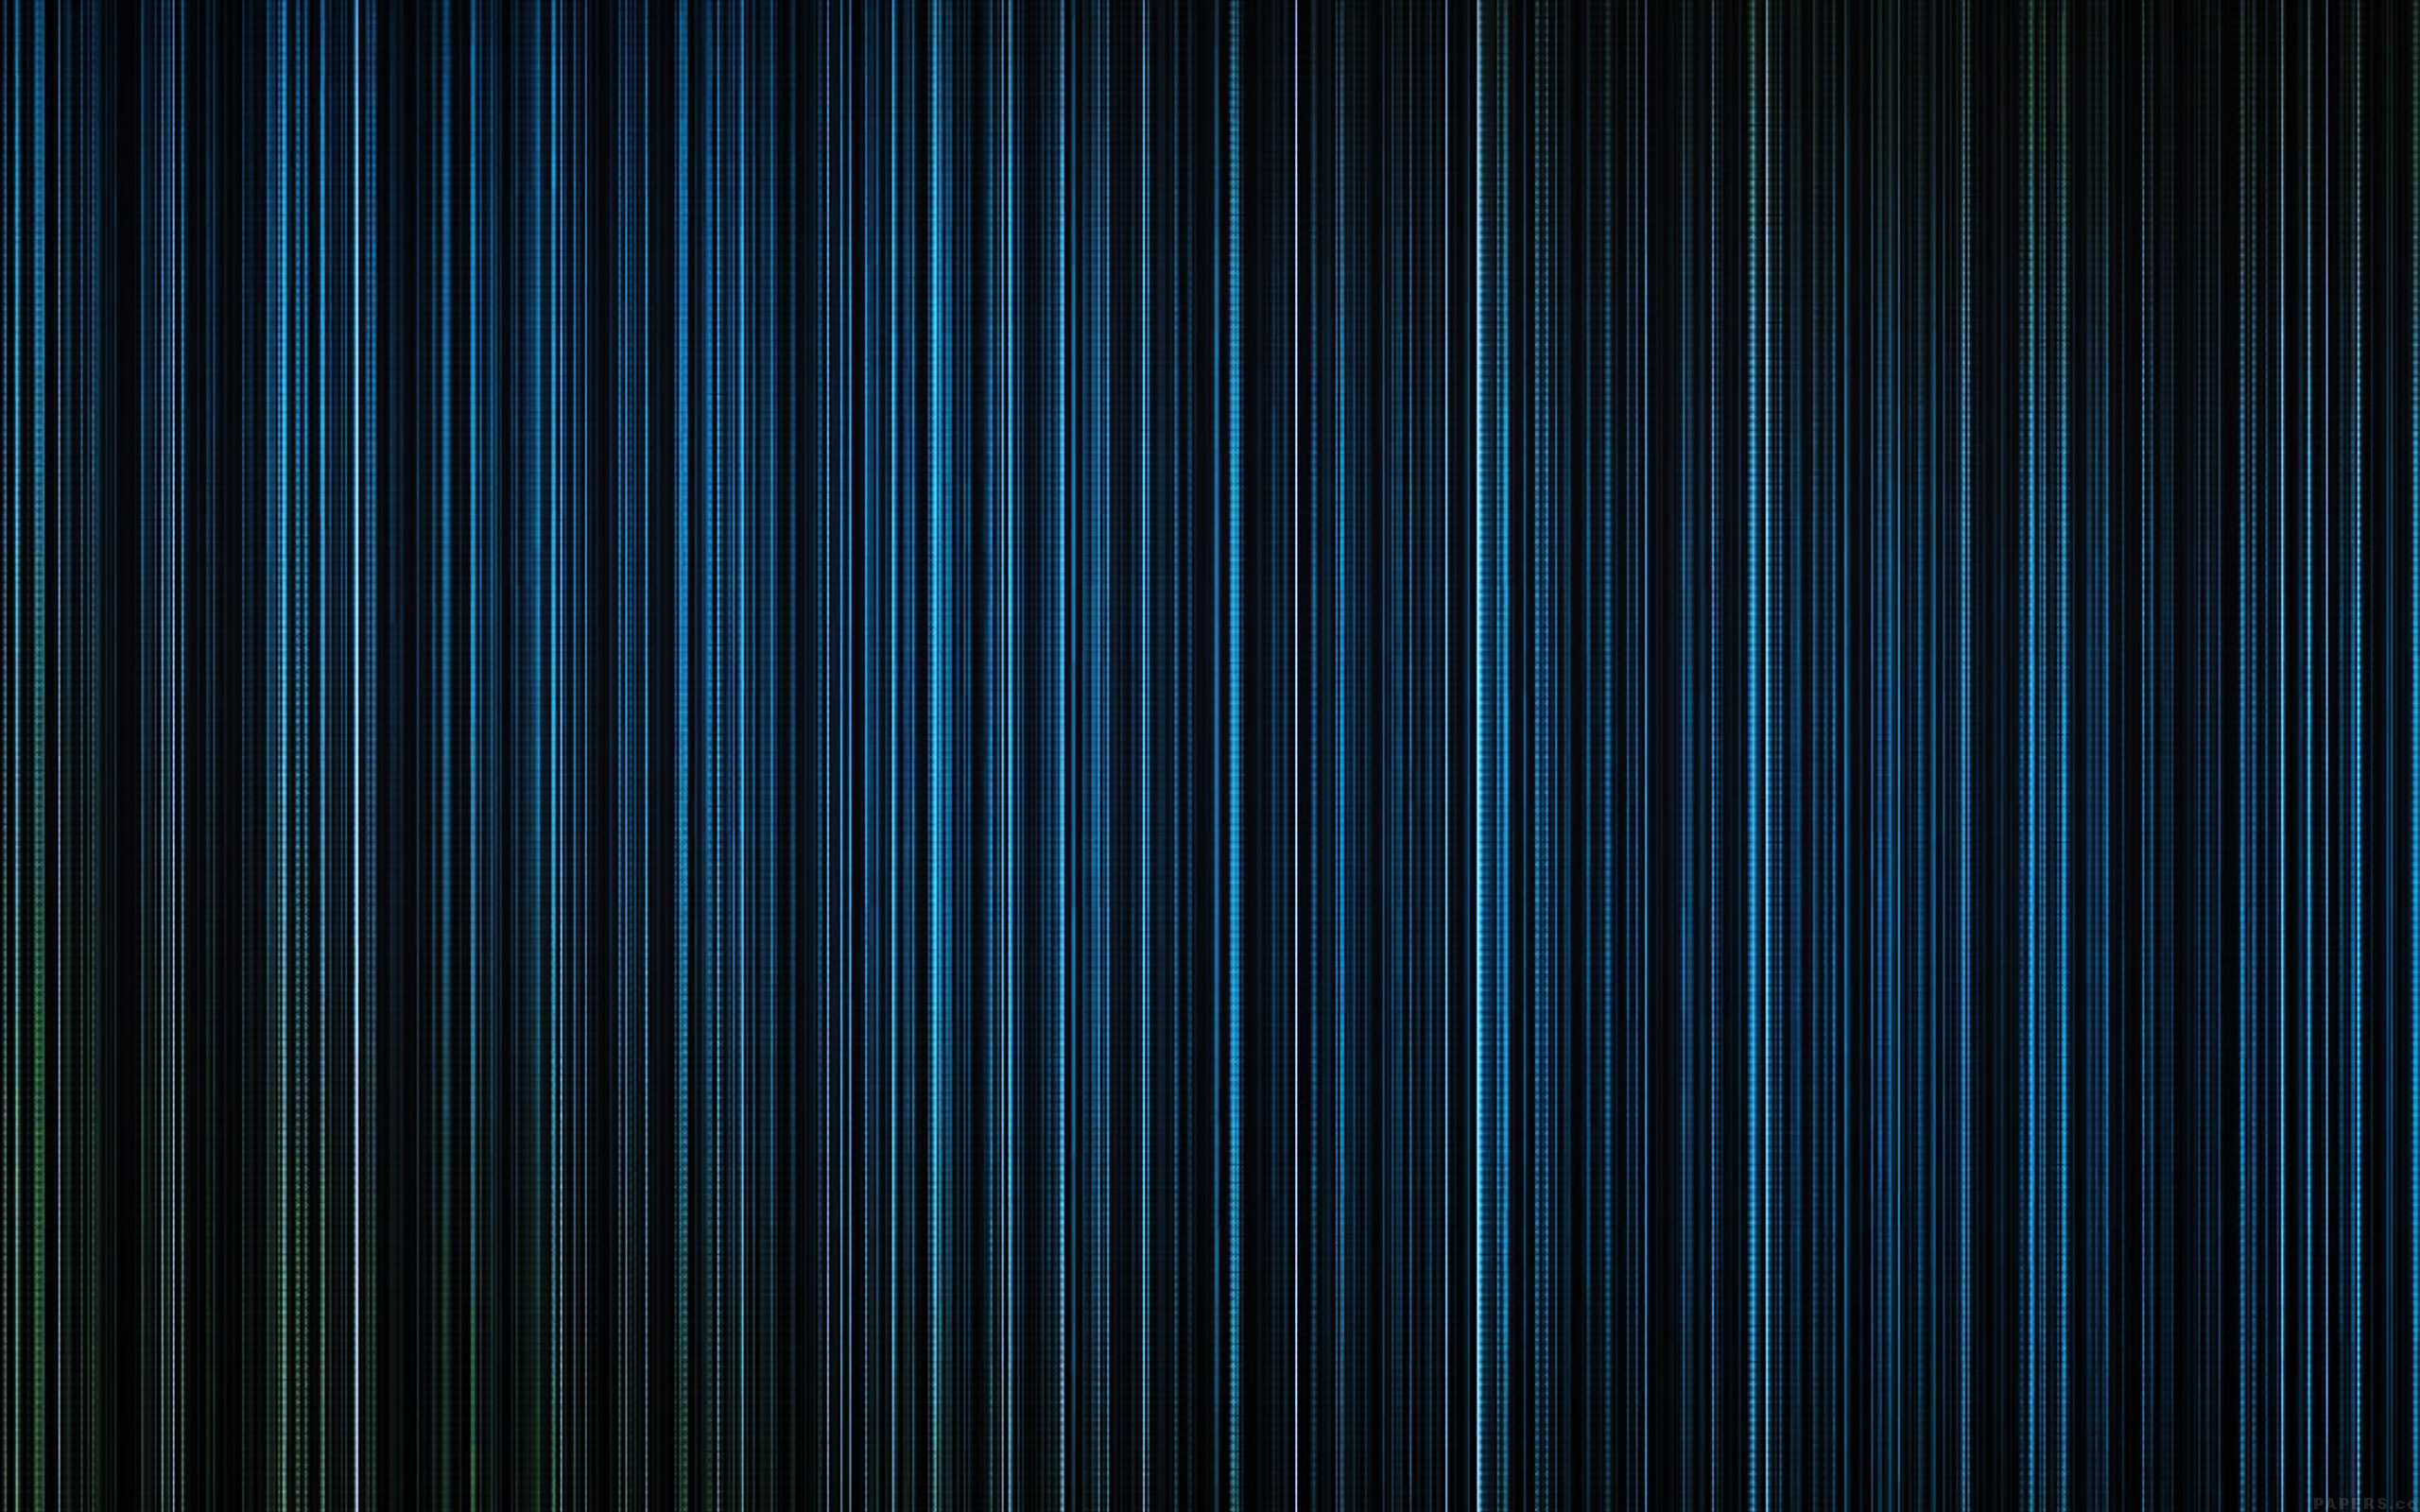 Abstract Lines Desktop